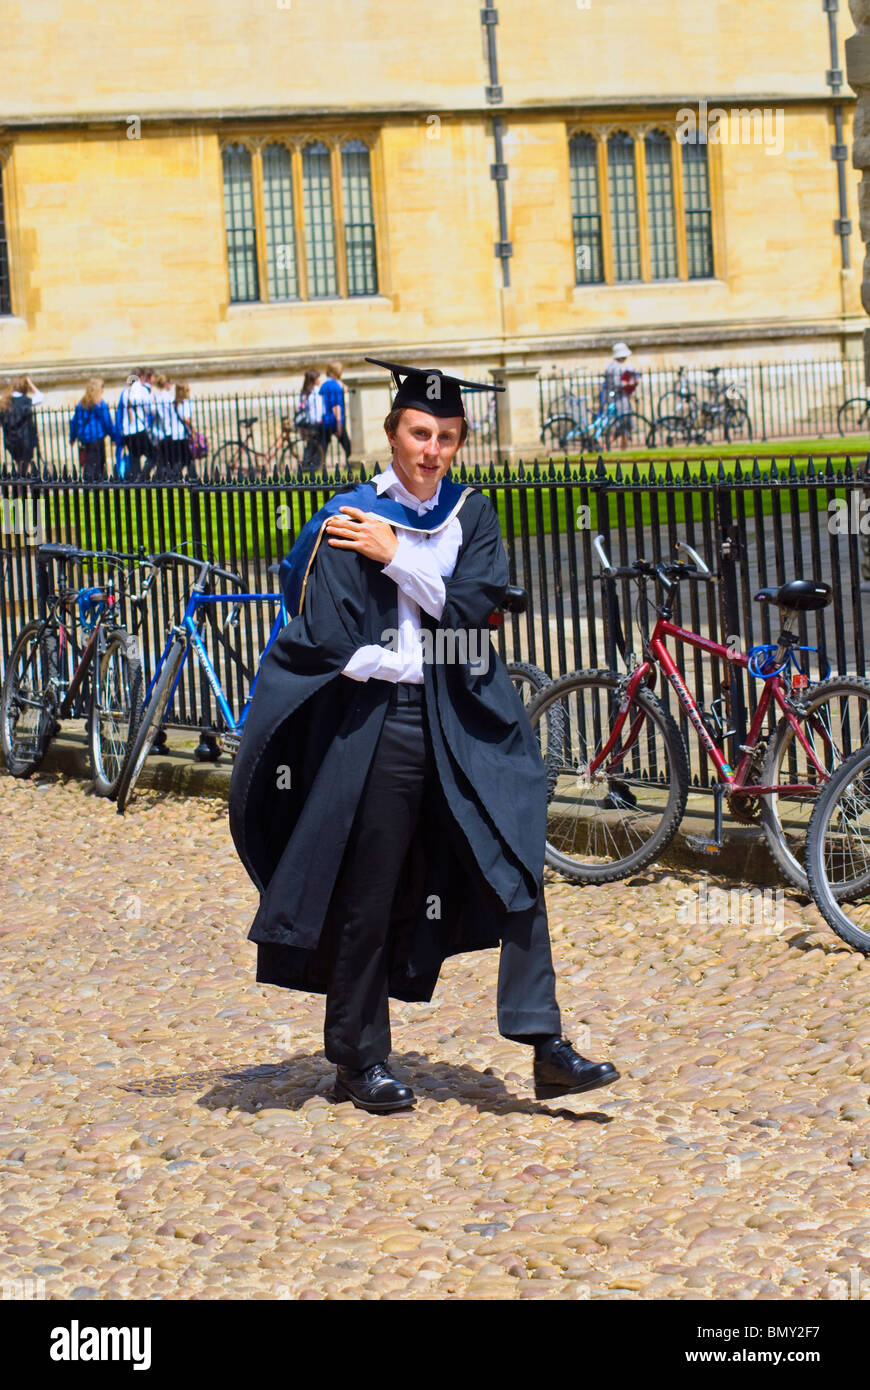 Oxford University student dressed in formal cape and gown Stock ...